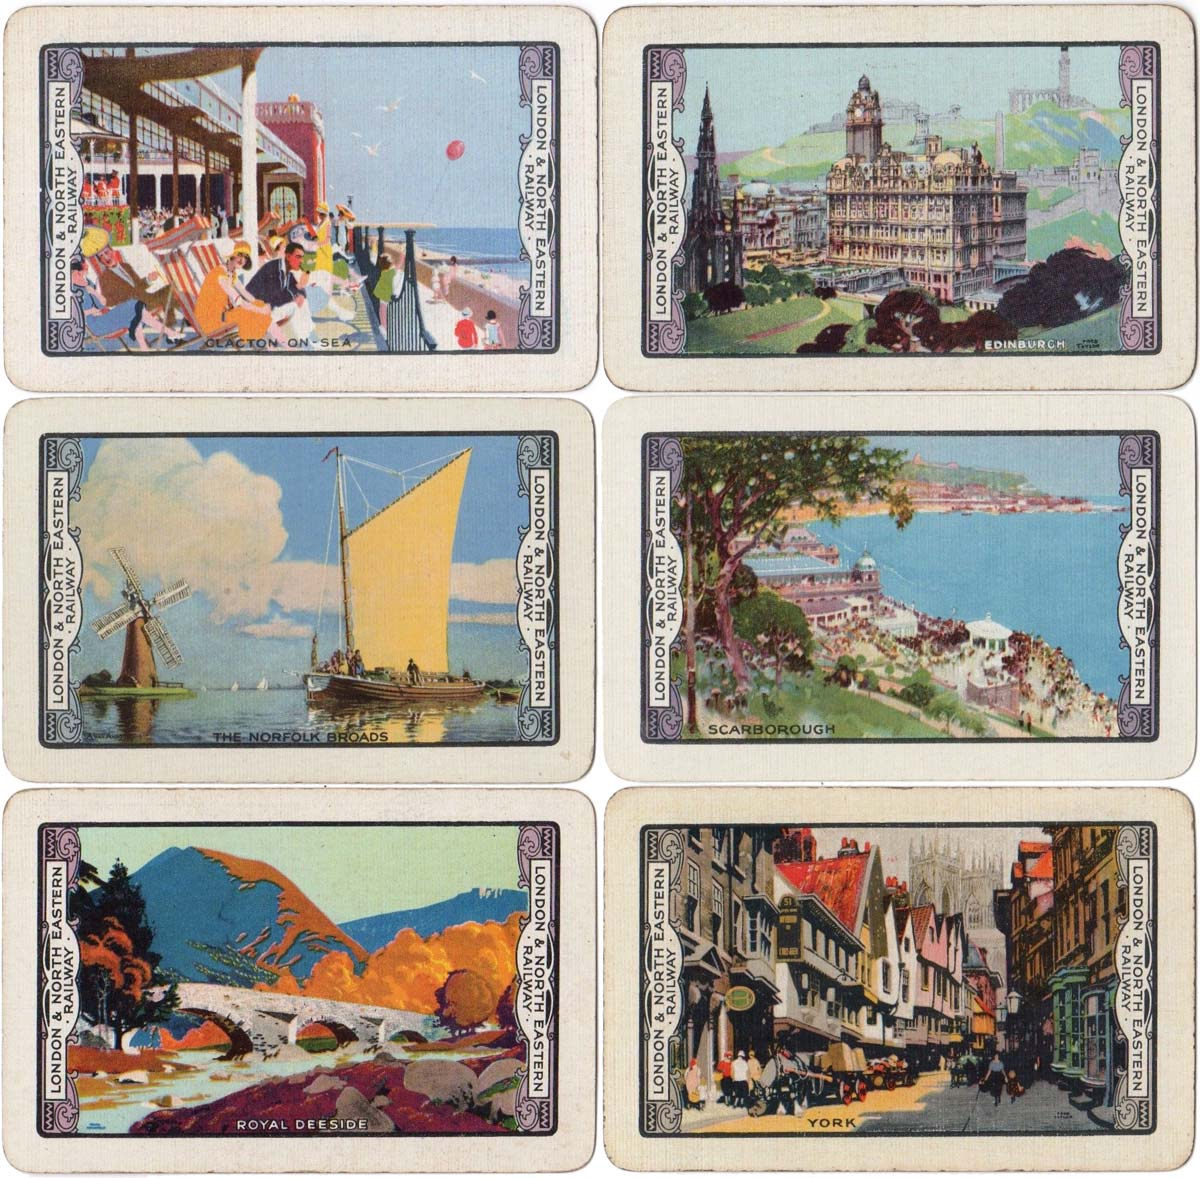 'Beautiful Britain' back designs sponsored by the London and North Eastern Railway, 1925-26